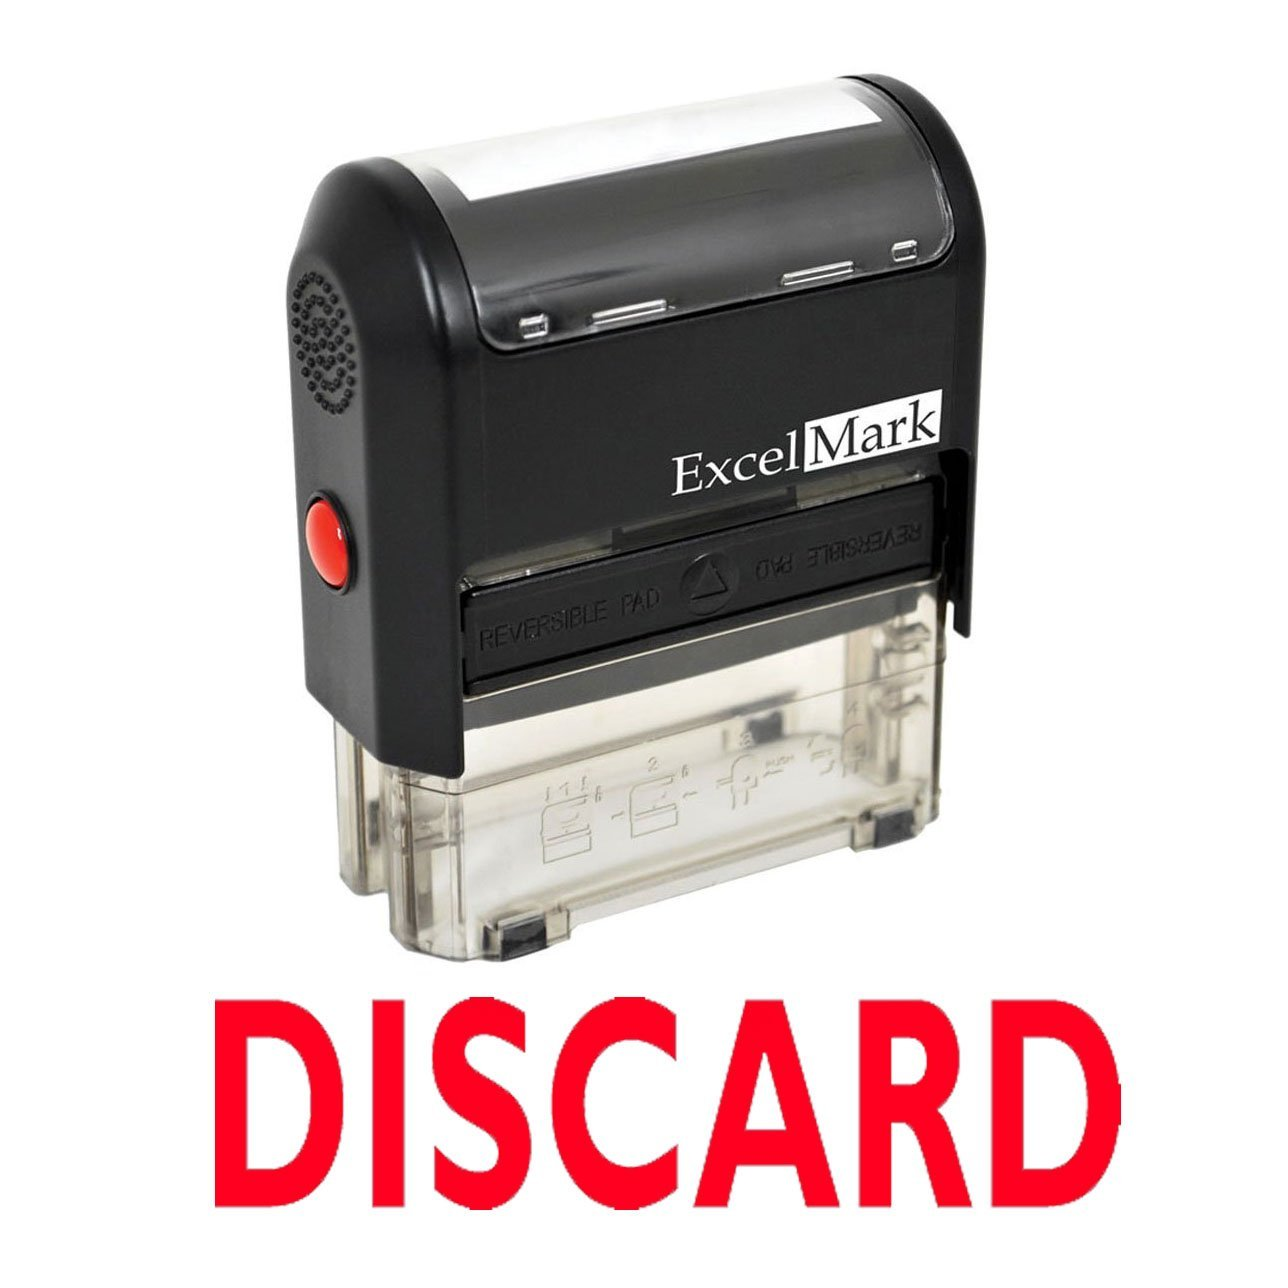 Discard Self Inking Rubber Stamp - Red Ink (ExcelMark A1539)